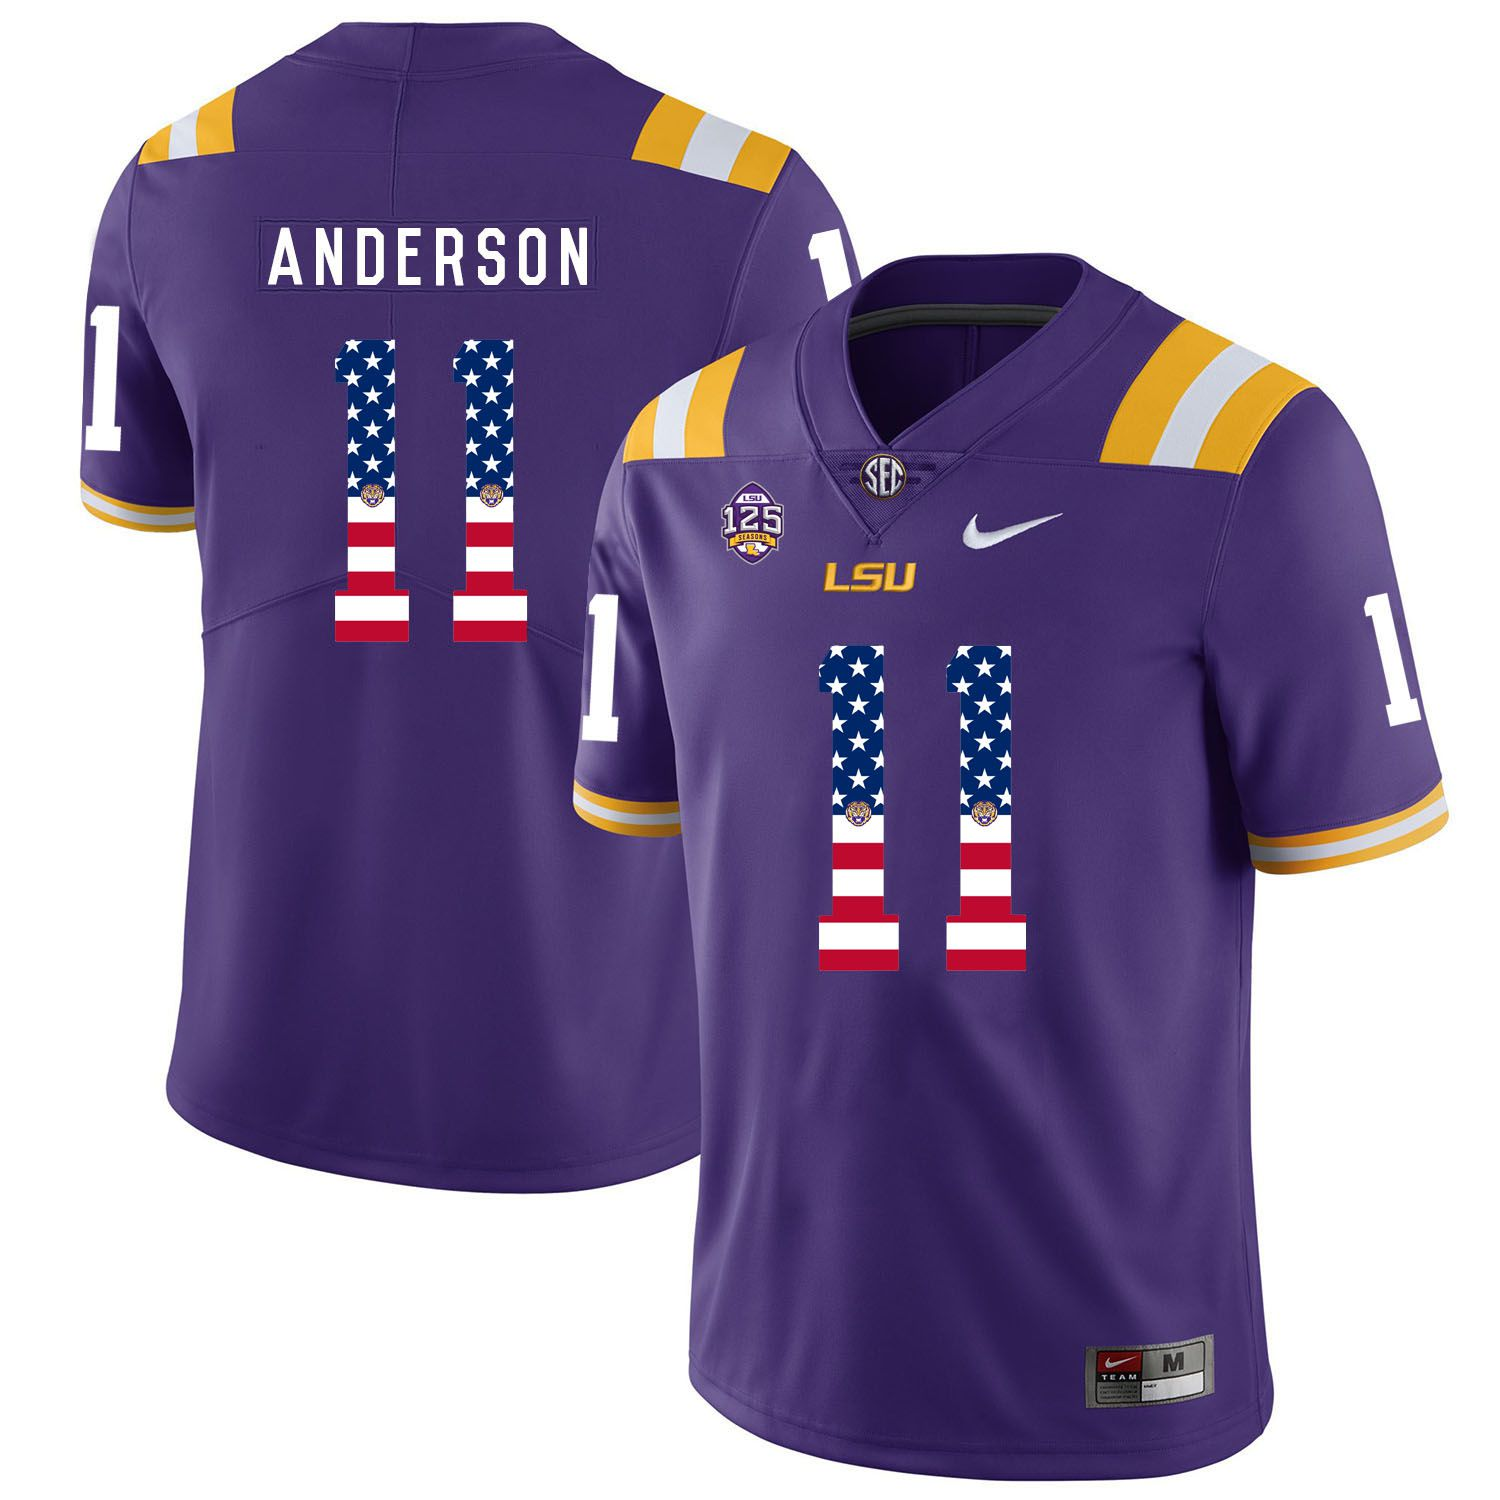 Men LSU Tigers 11 Anderson Purple Flag Customized NCAA Jerseys